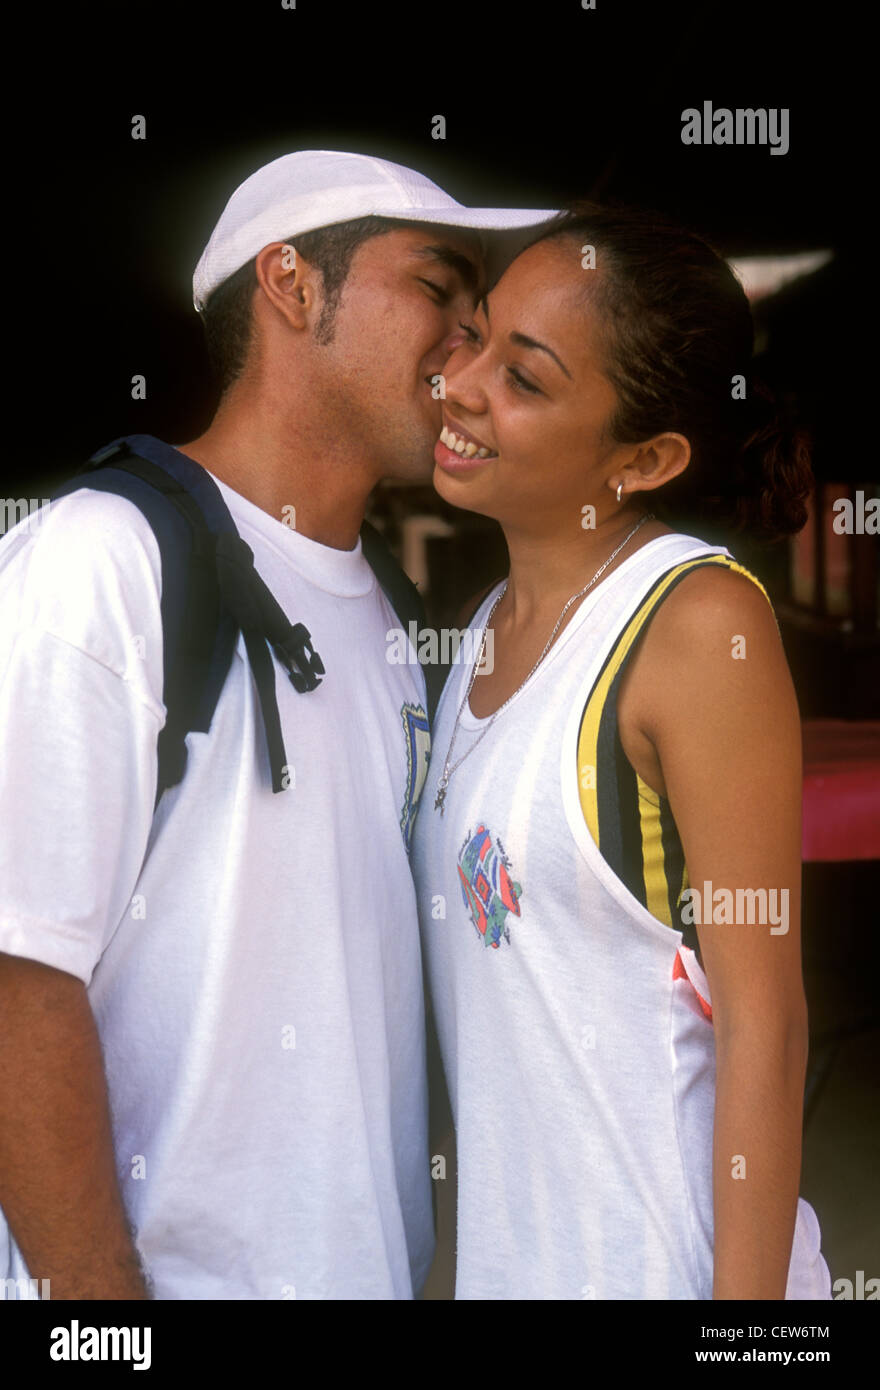 Mexicans greeting stock photos mexicans greeting stock images alamy mexicans mexican man mexican woman friends greeting kiss on cheek m4hsunfo